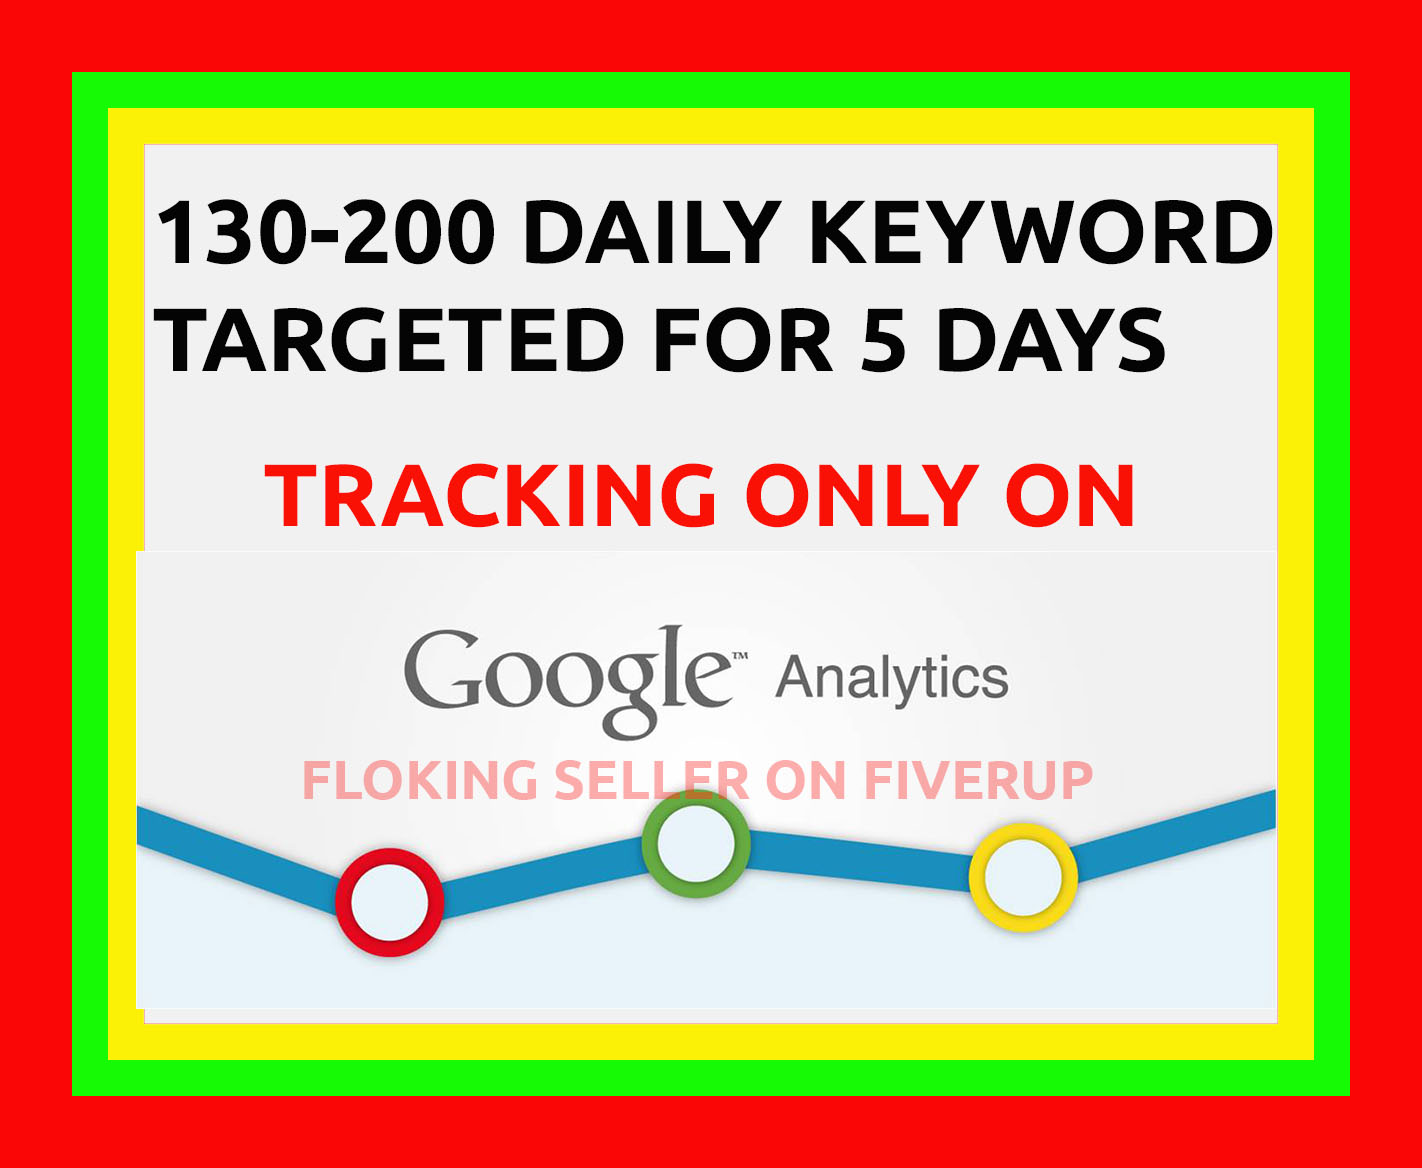 ORGANIC KEYWORD TARGETED FOR 5 DAYS